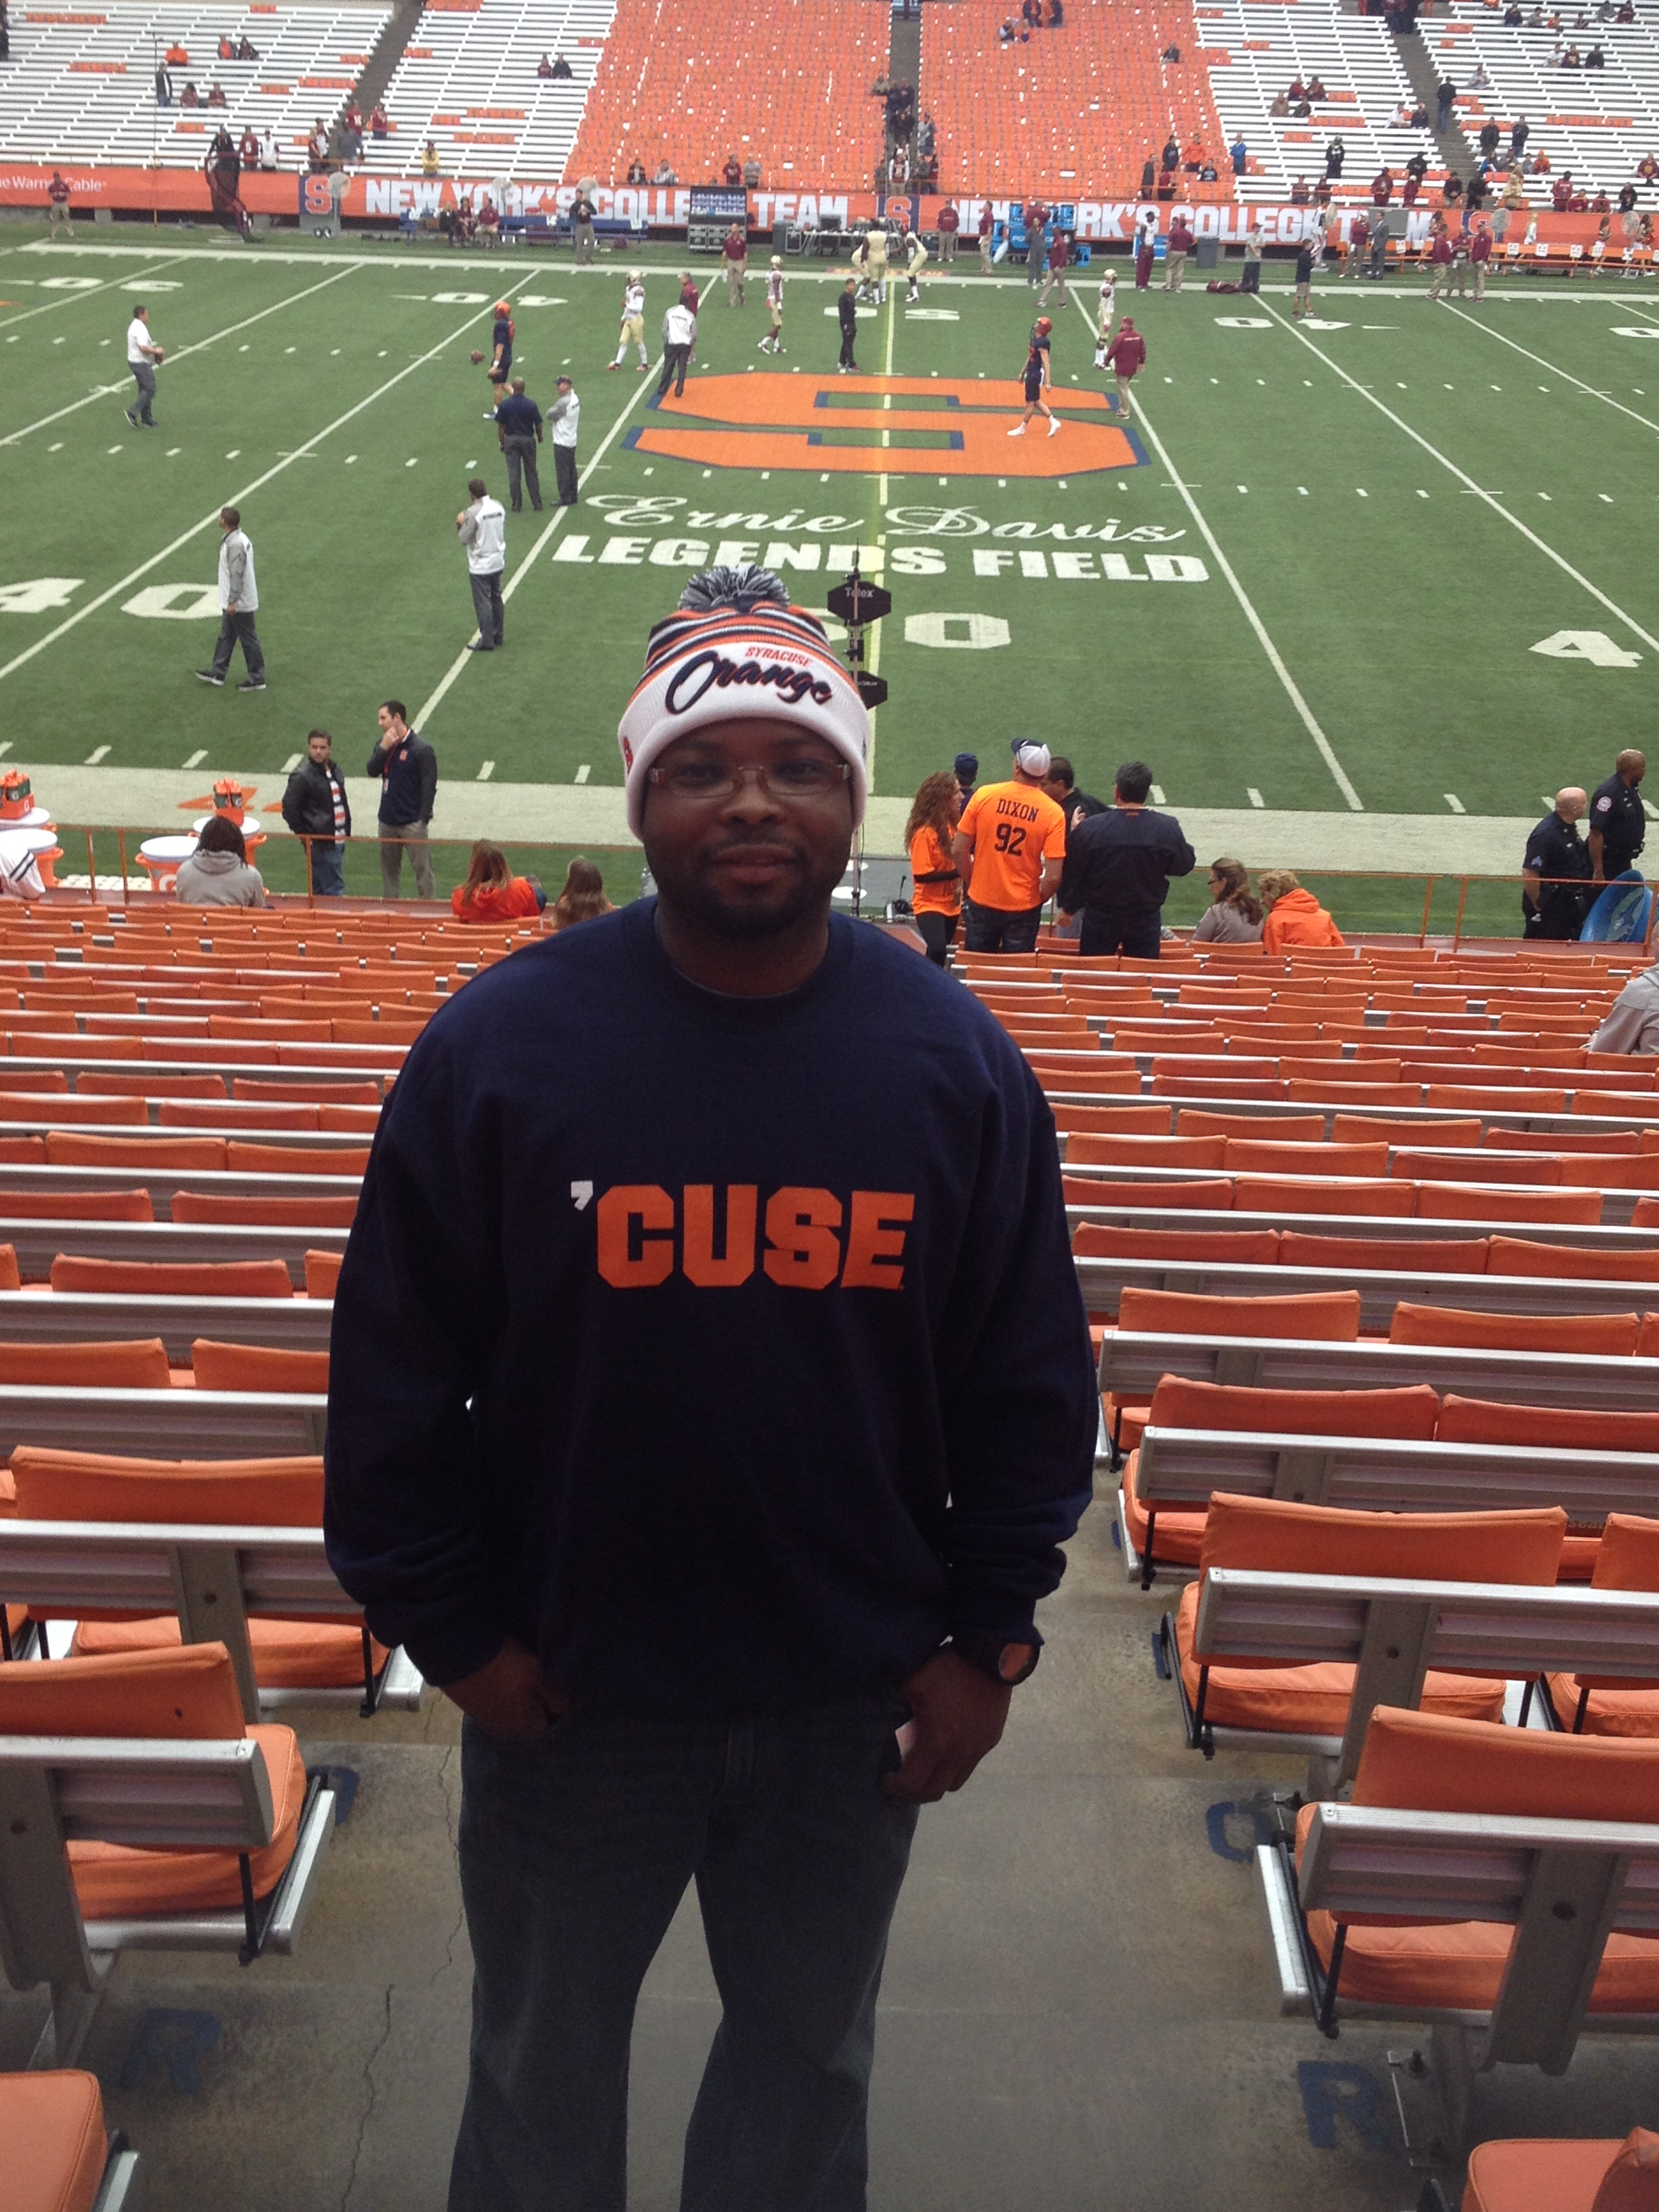 At Syracuse Game